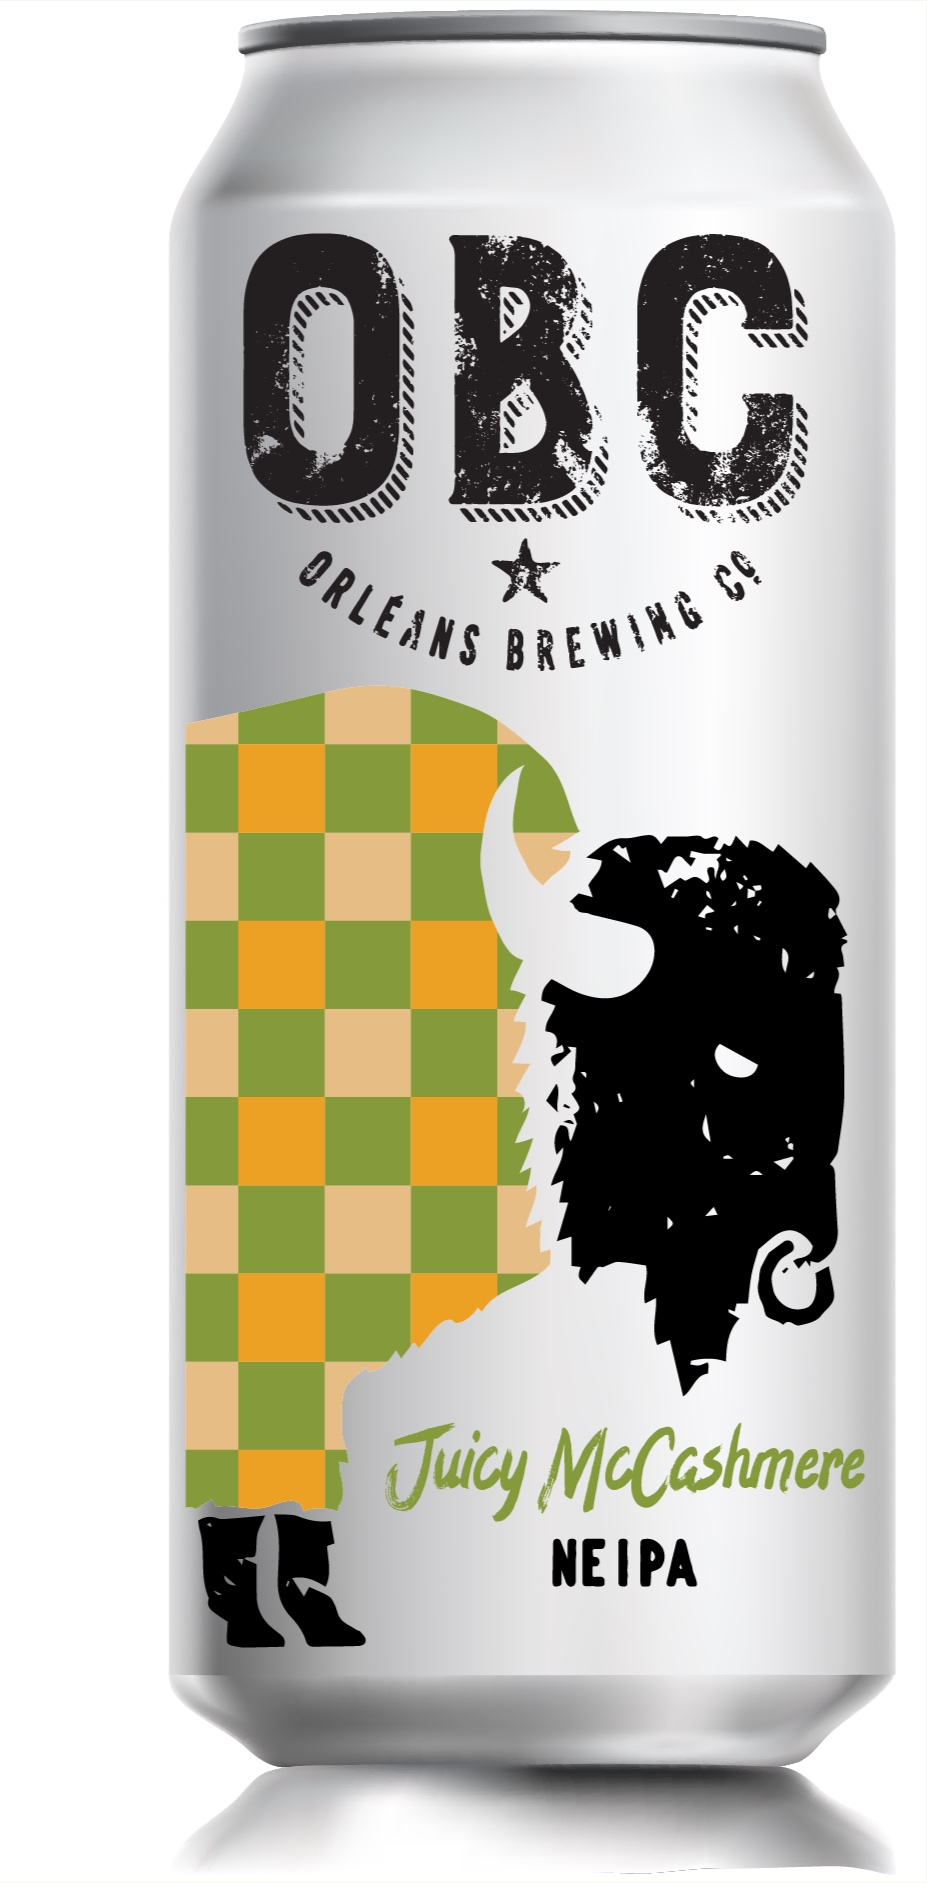 Orléans Brewing Co